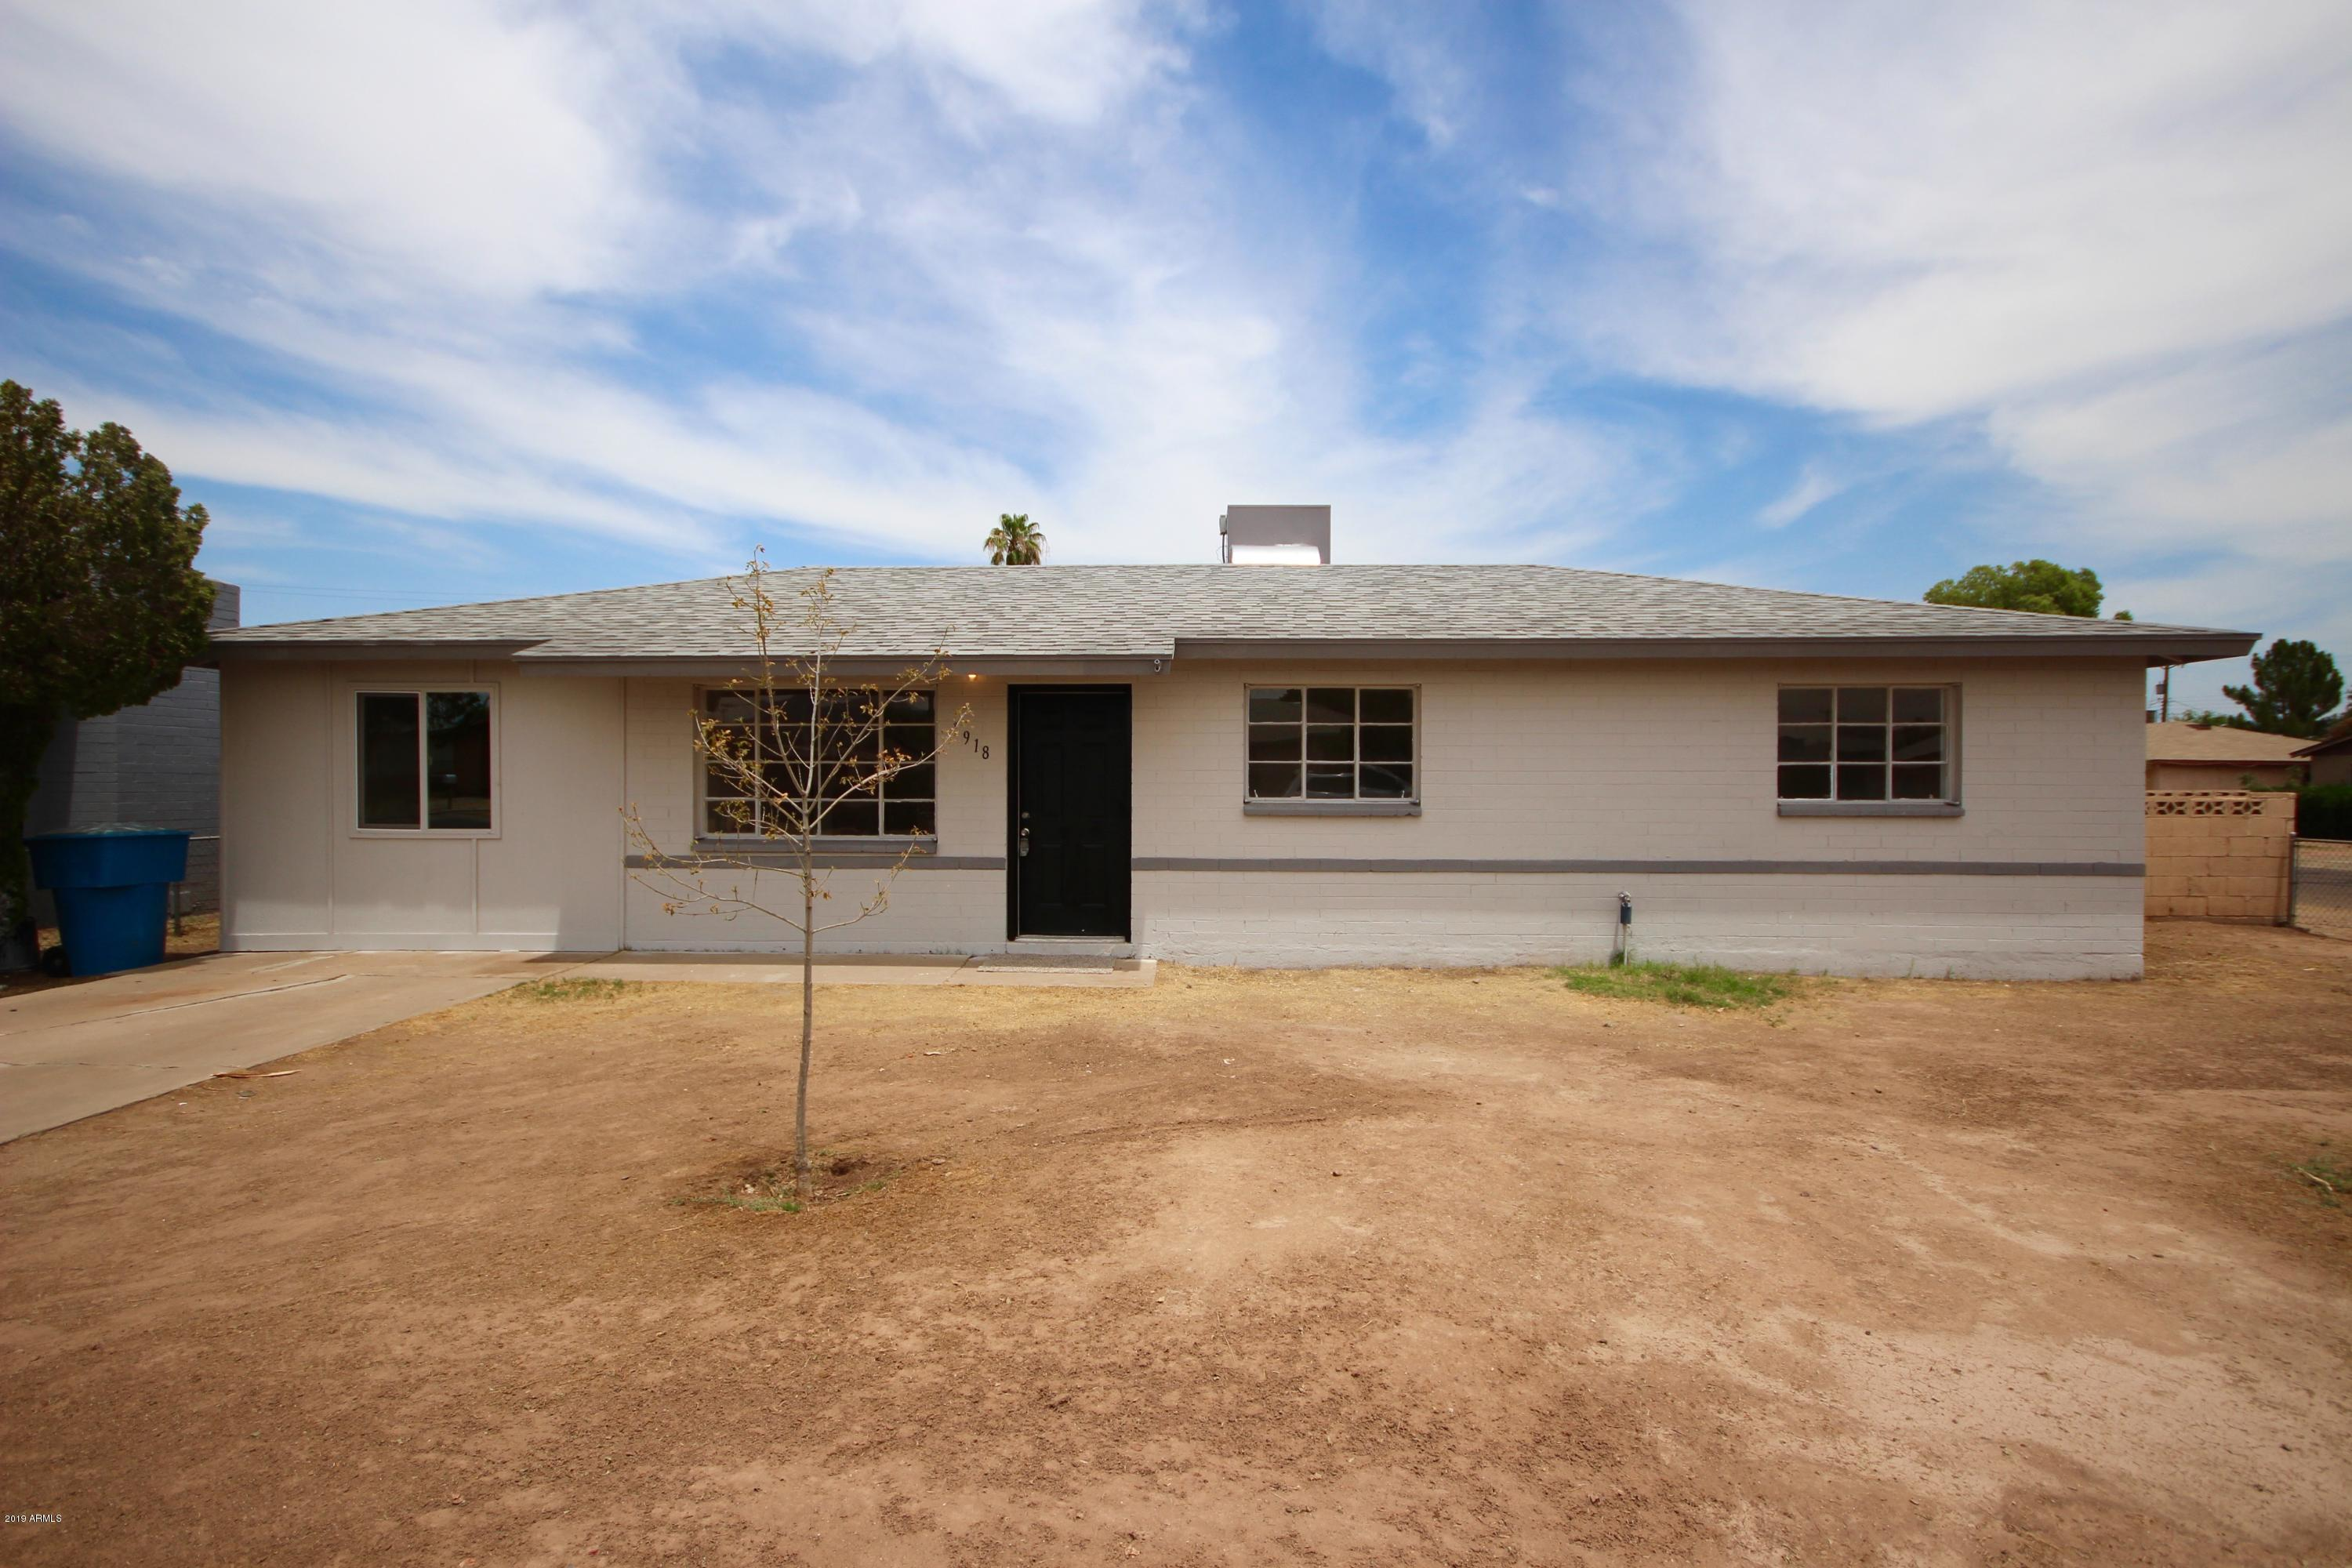 Awe Inspiring 1918 E Mobile Lane Phoenix Az 85040 Sold Listing Mls 5953730 Better Homes And Gardens Bloomtree Realty Home Interior And Landscaping Ologienasavecom